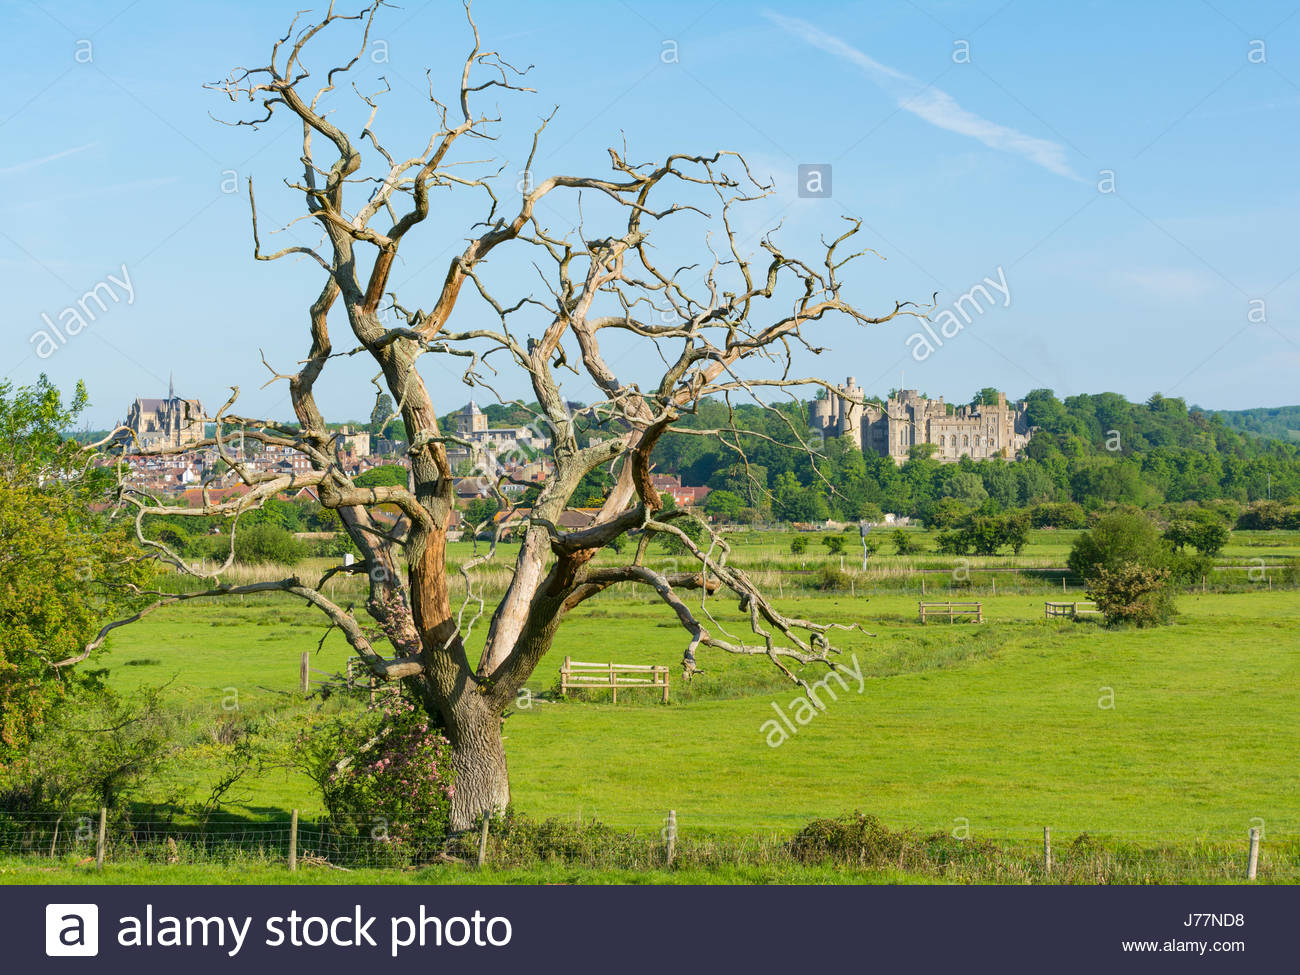 Arundel, West Sussex, England, UK. 24th May 2017. UK Weather. Countryside fields with a view of the medieval market Stock Photo